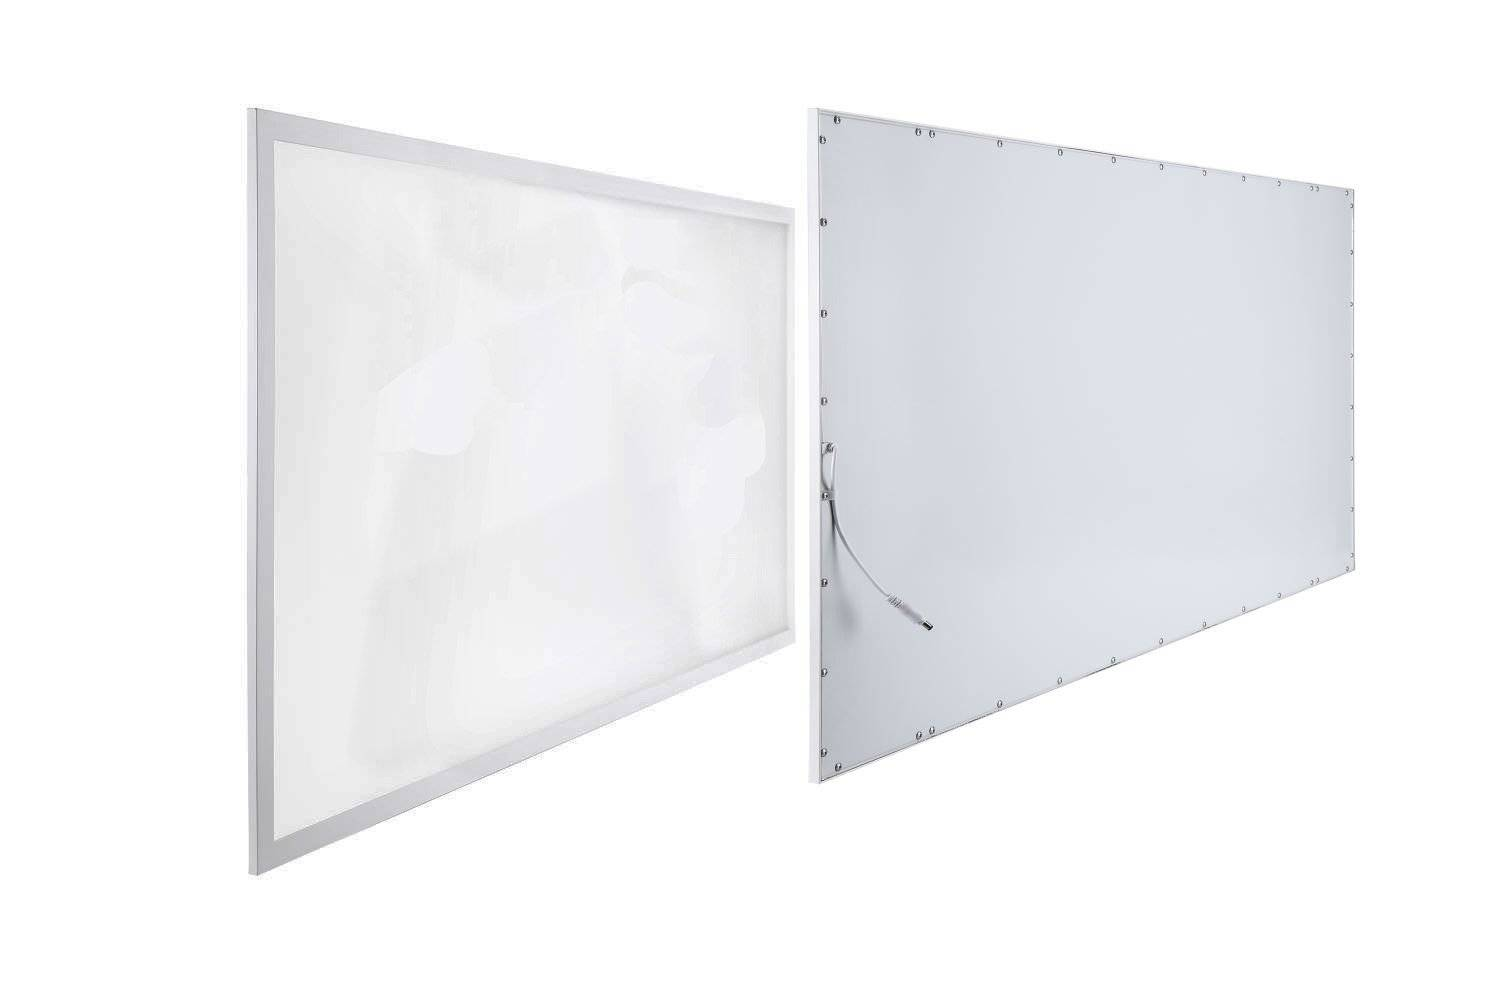 LED panel 60x120 edge-lit panel 600x1200 ultra-thin led flat panel light Europe UK CE CB OHS TUV 5